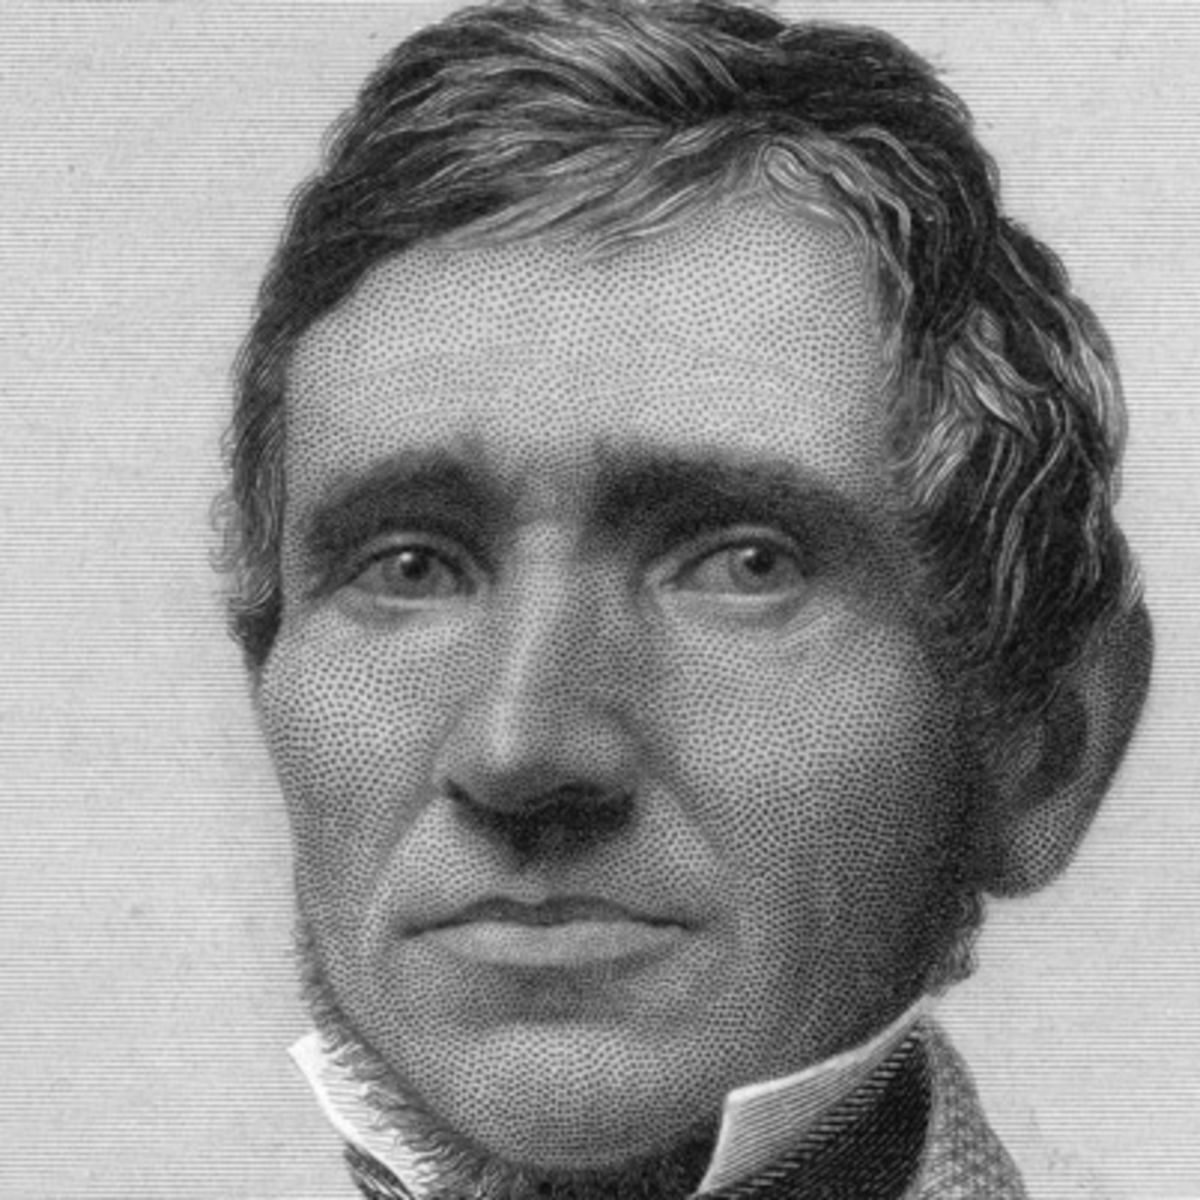 a biography of charles goodyear the american chemist and engineer Charles goodyear december 18 1800 july 1 1860 was an american selftaught chemist and manufacturing engineer who developed vulcanized rubber for which.